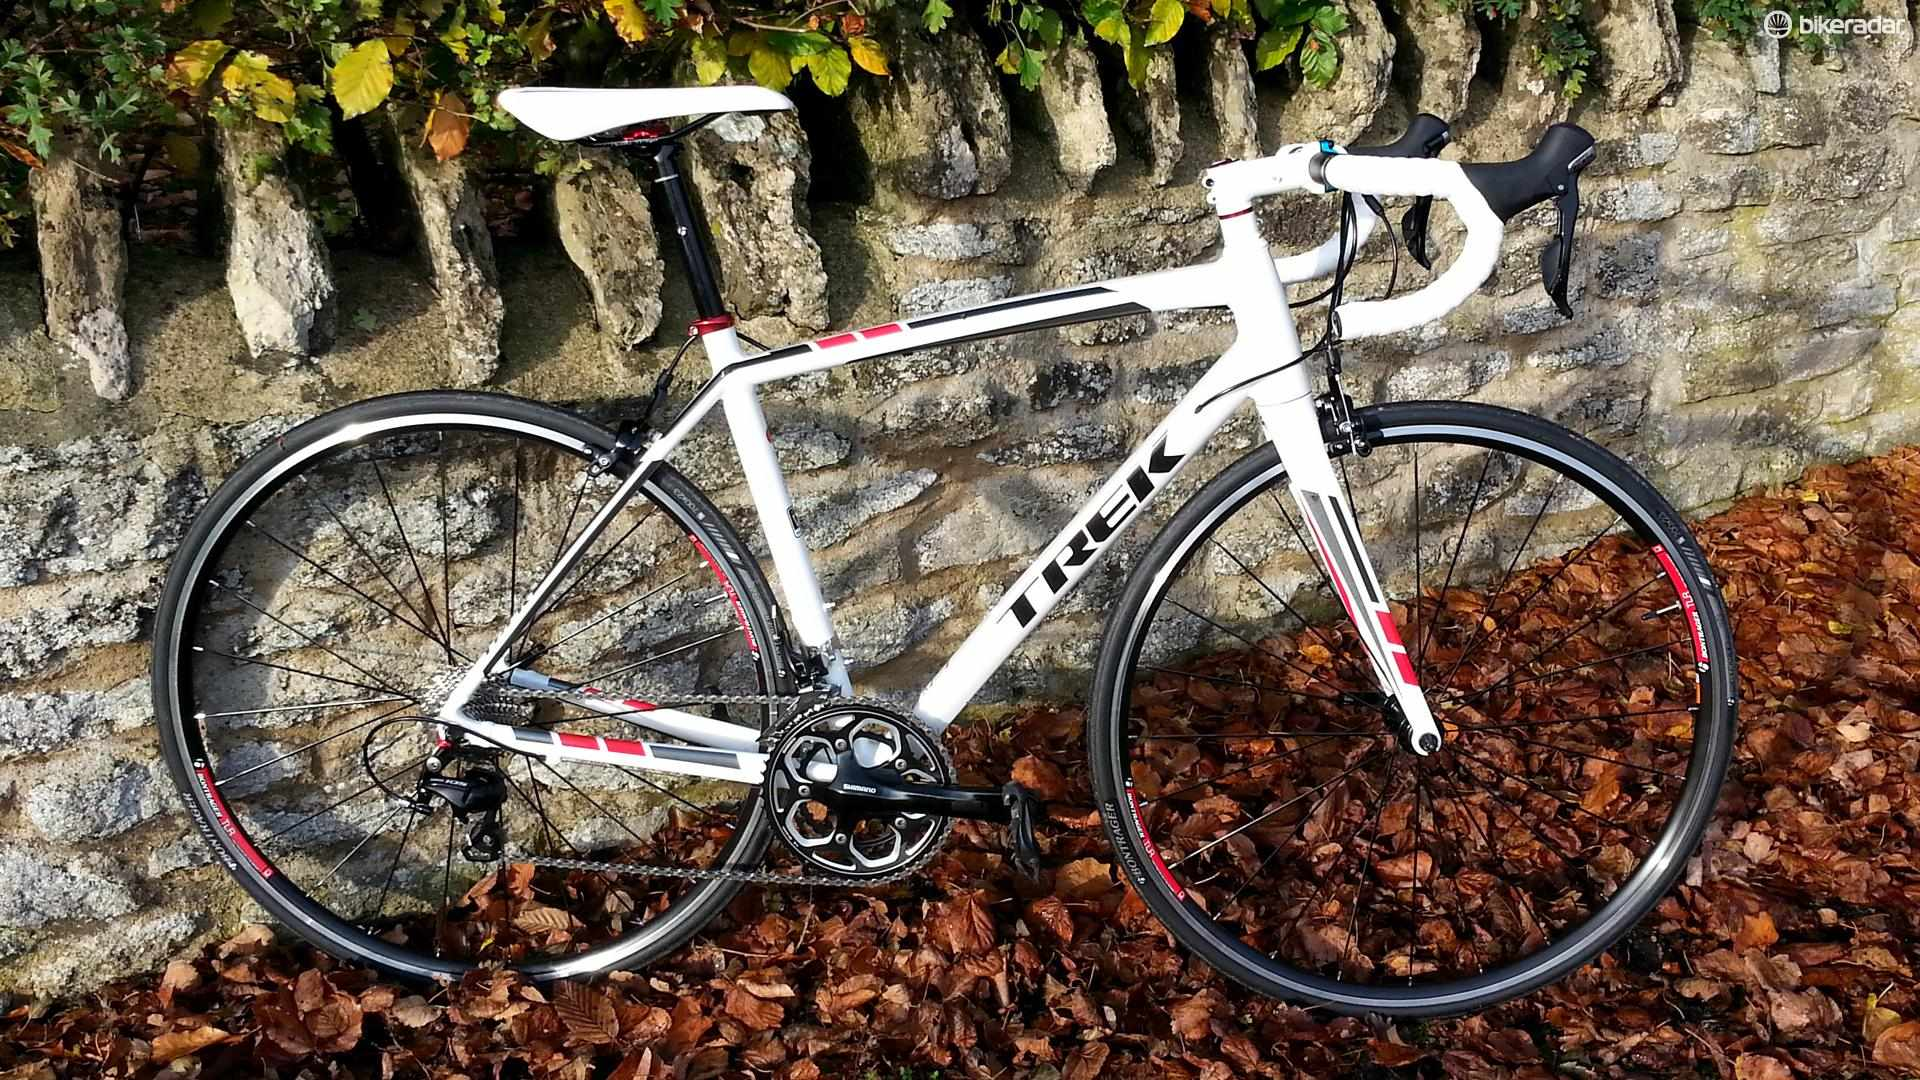 The Trek Madone 2.1 is the cheapest Madone on the market